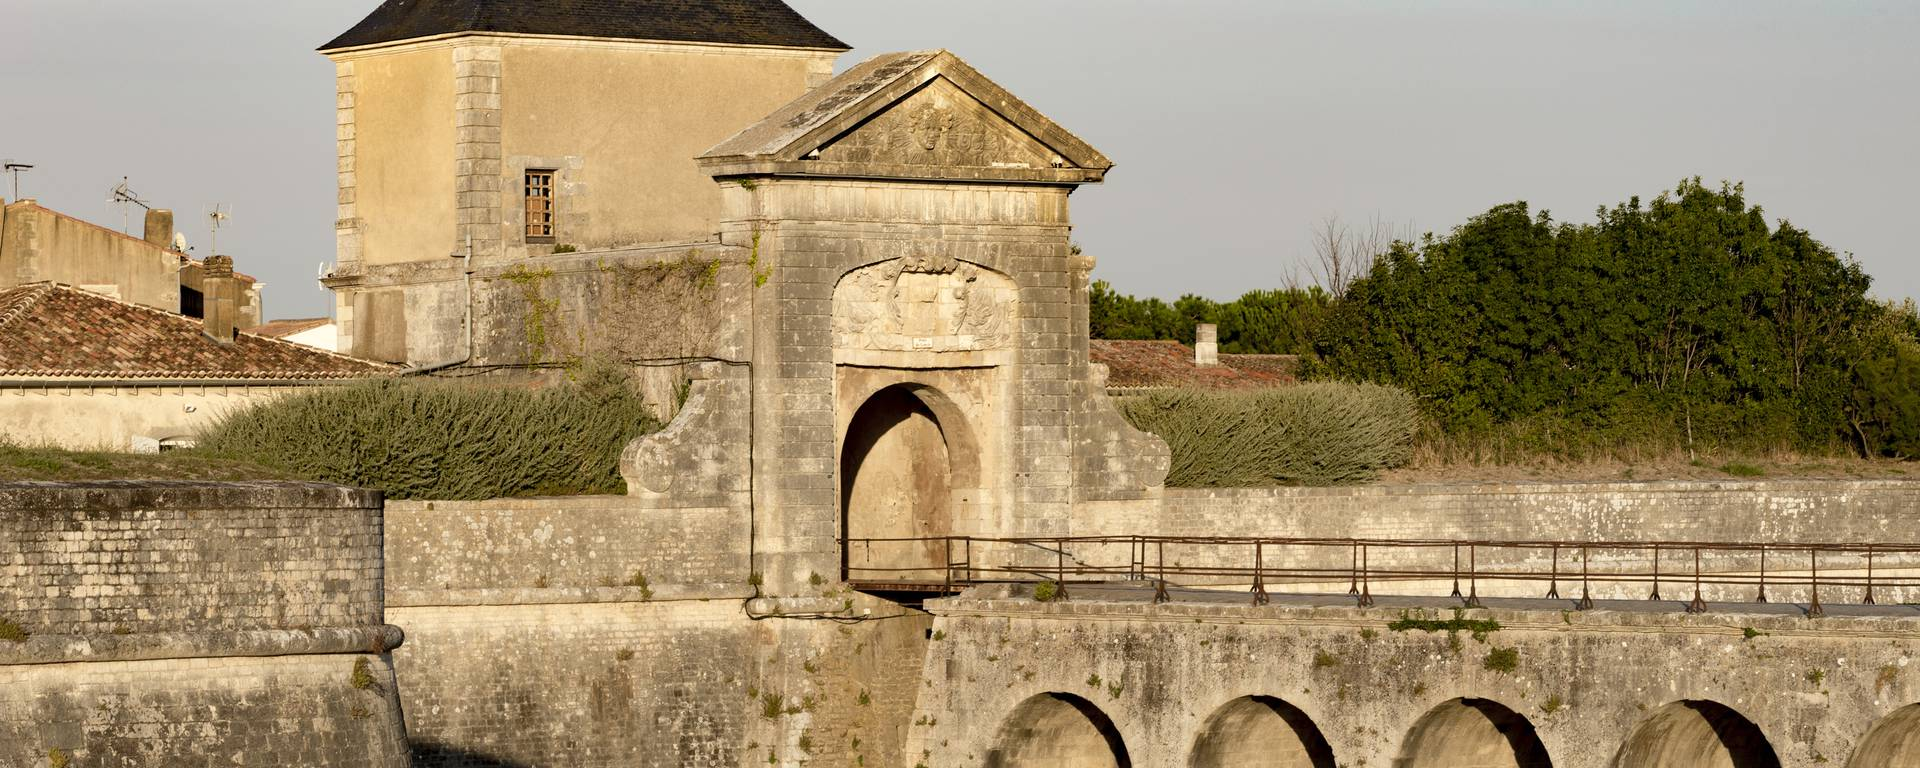 Fortifications Vauban ©Yann Werdefroy